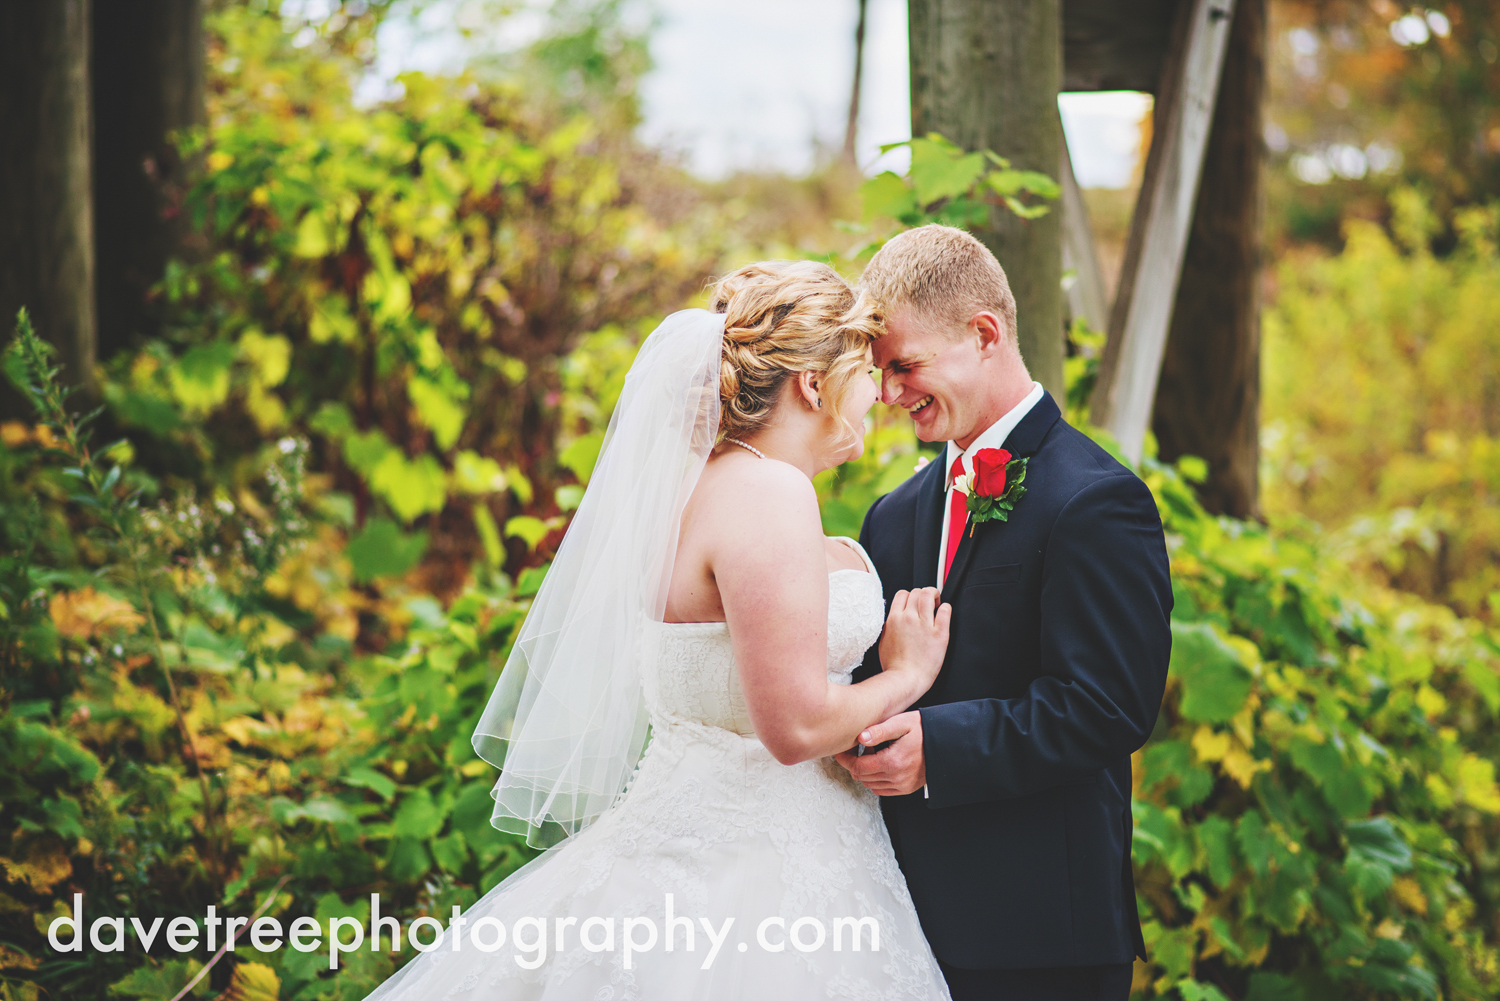 holland_wedding_photographer_06.jpg